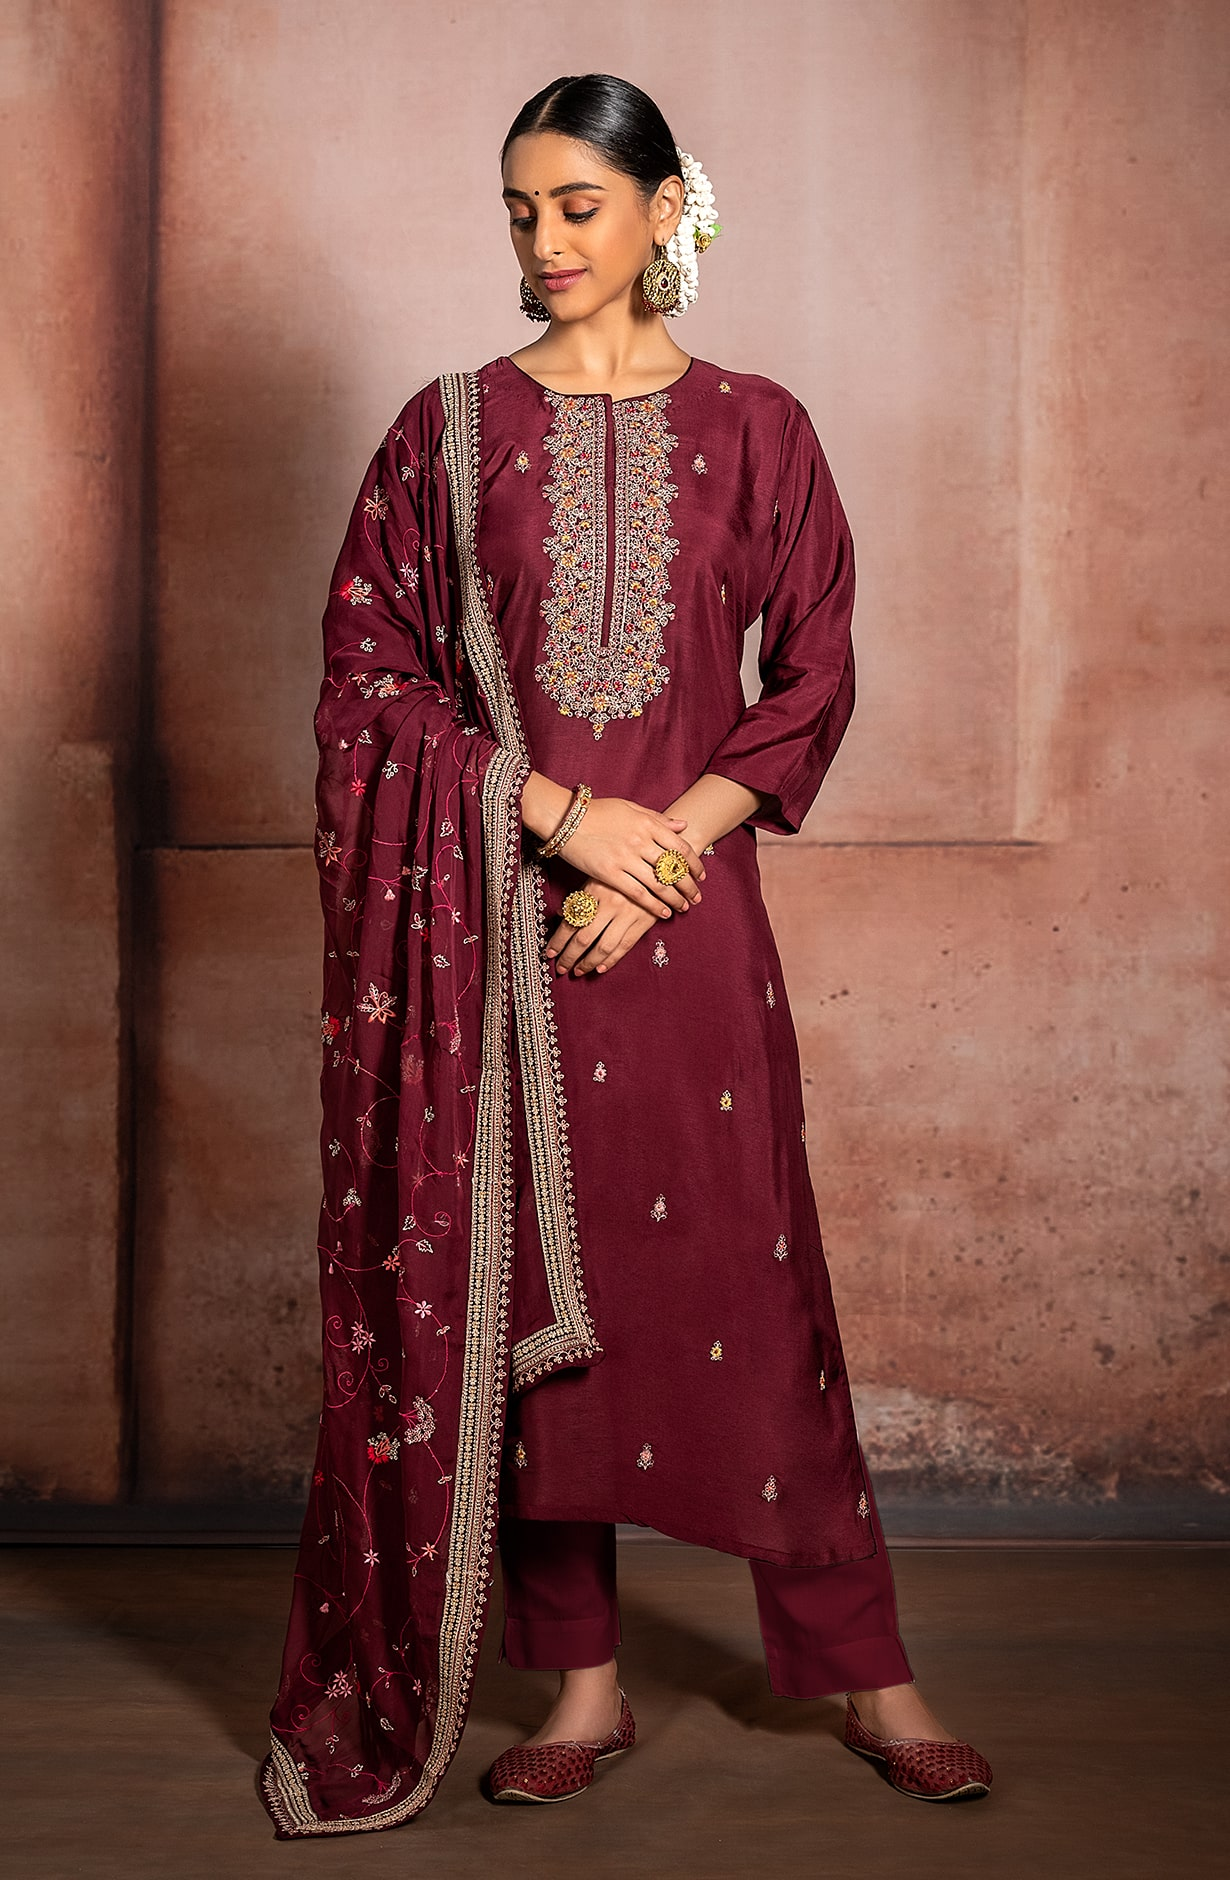 Maroon Russian Silk Exclusive Unstitched Suit with Organza Dupatta - R157-SPR991